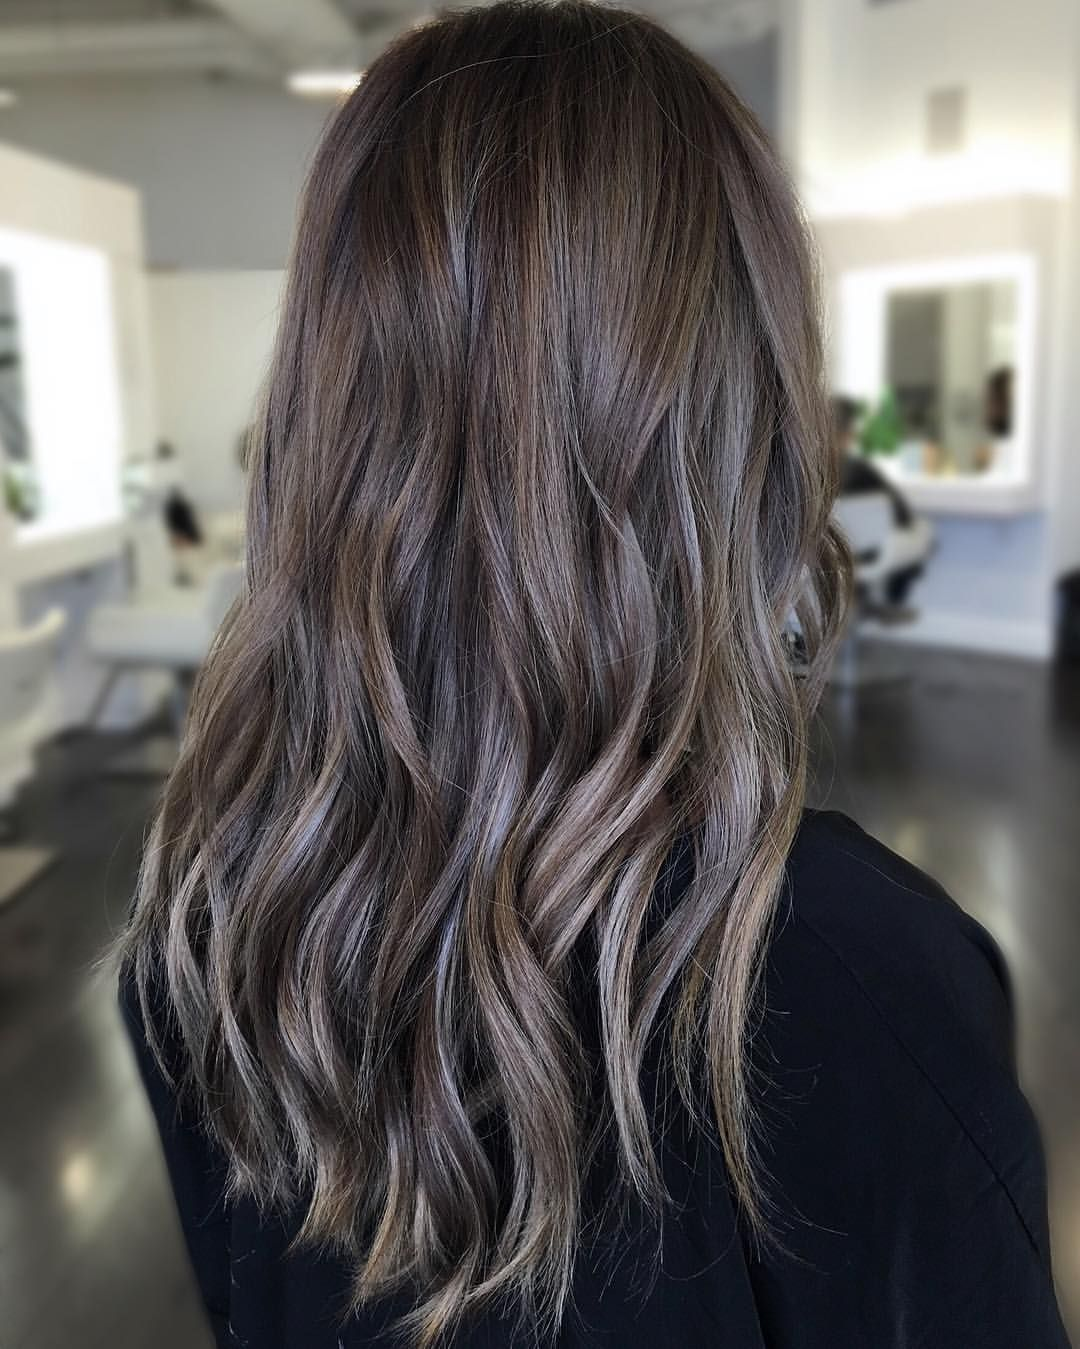 Instagram post by Orange County Hair Colorist • Jul 5, 2016 at 11:04pm UTC